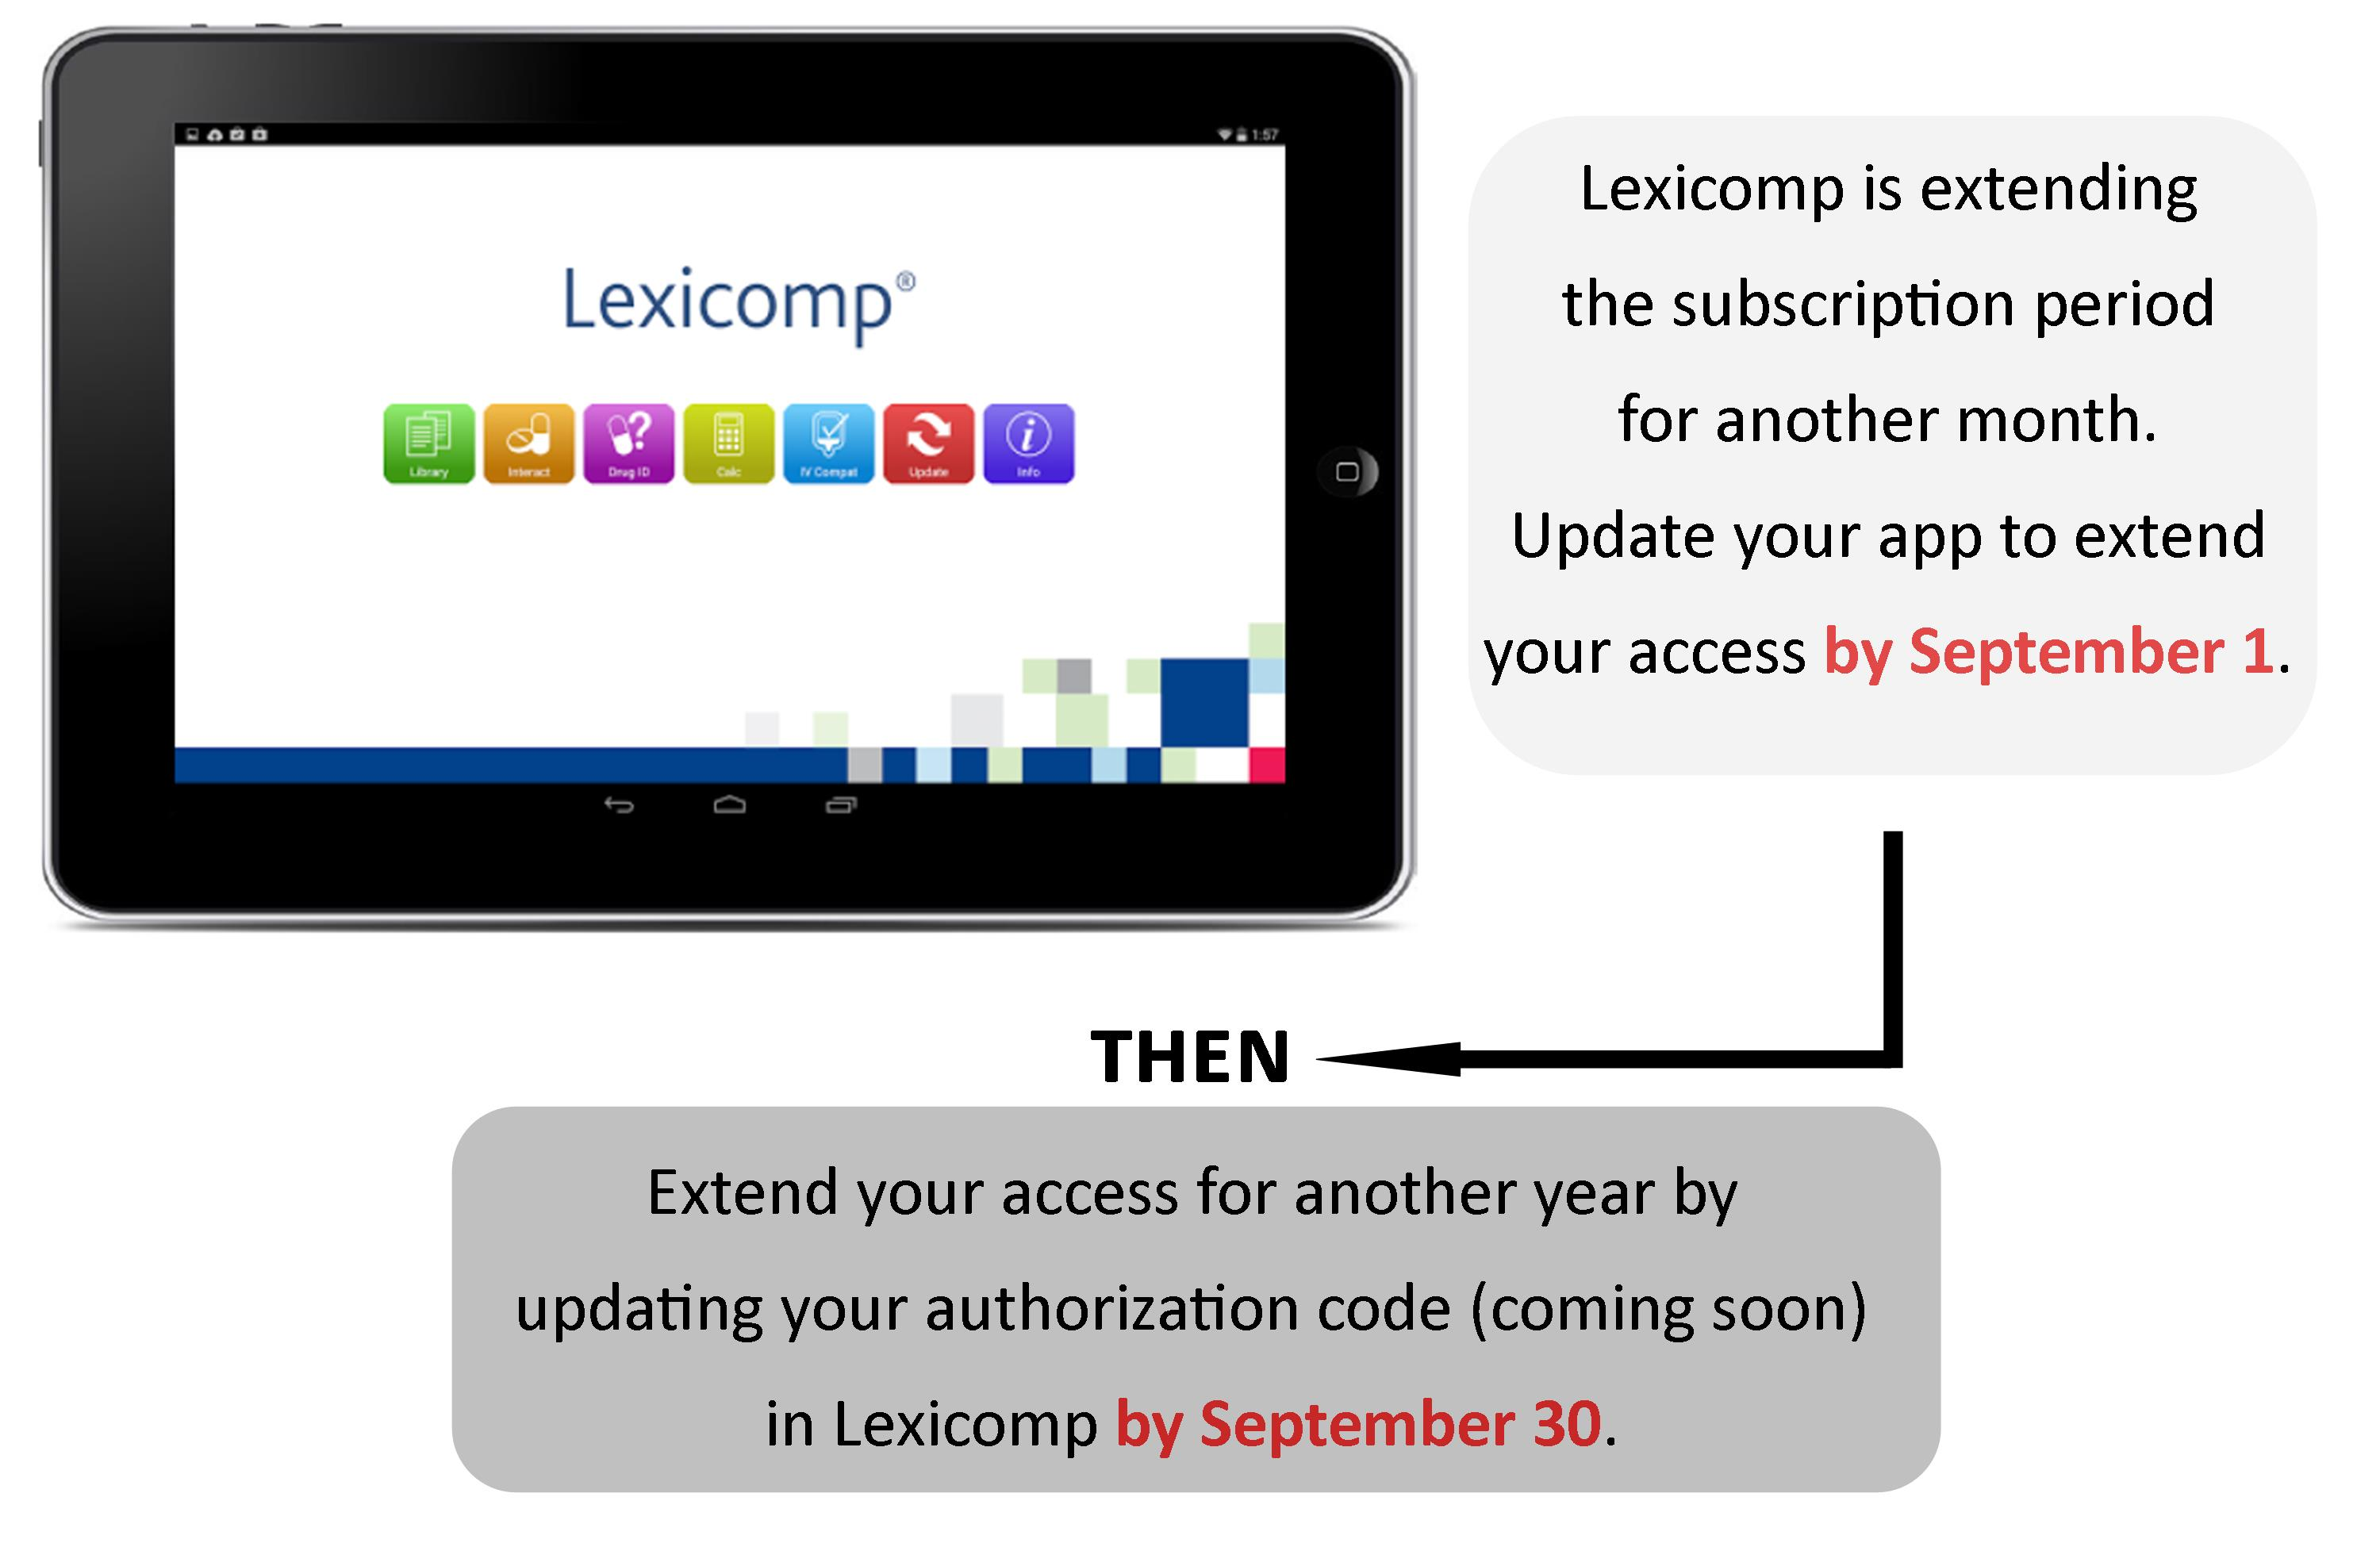 Extend your Lexicomp subscription period by September 1